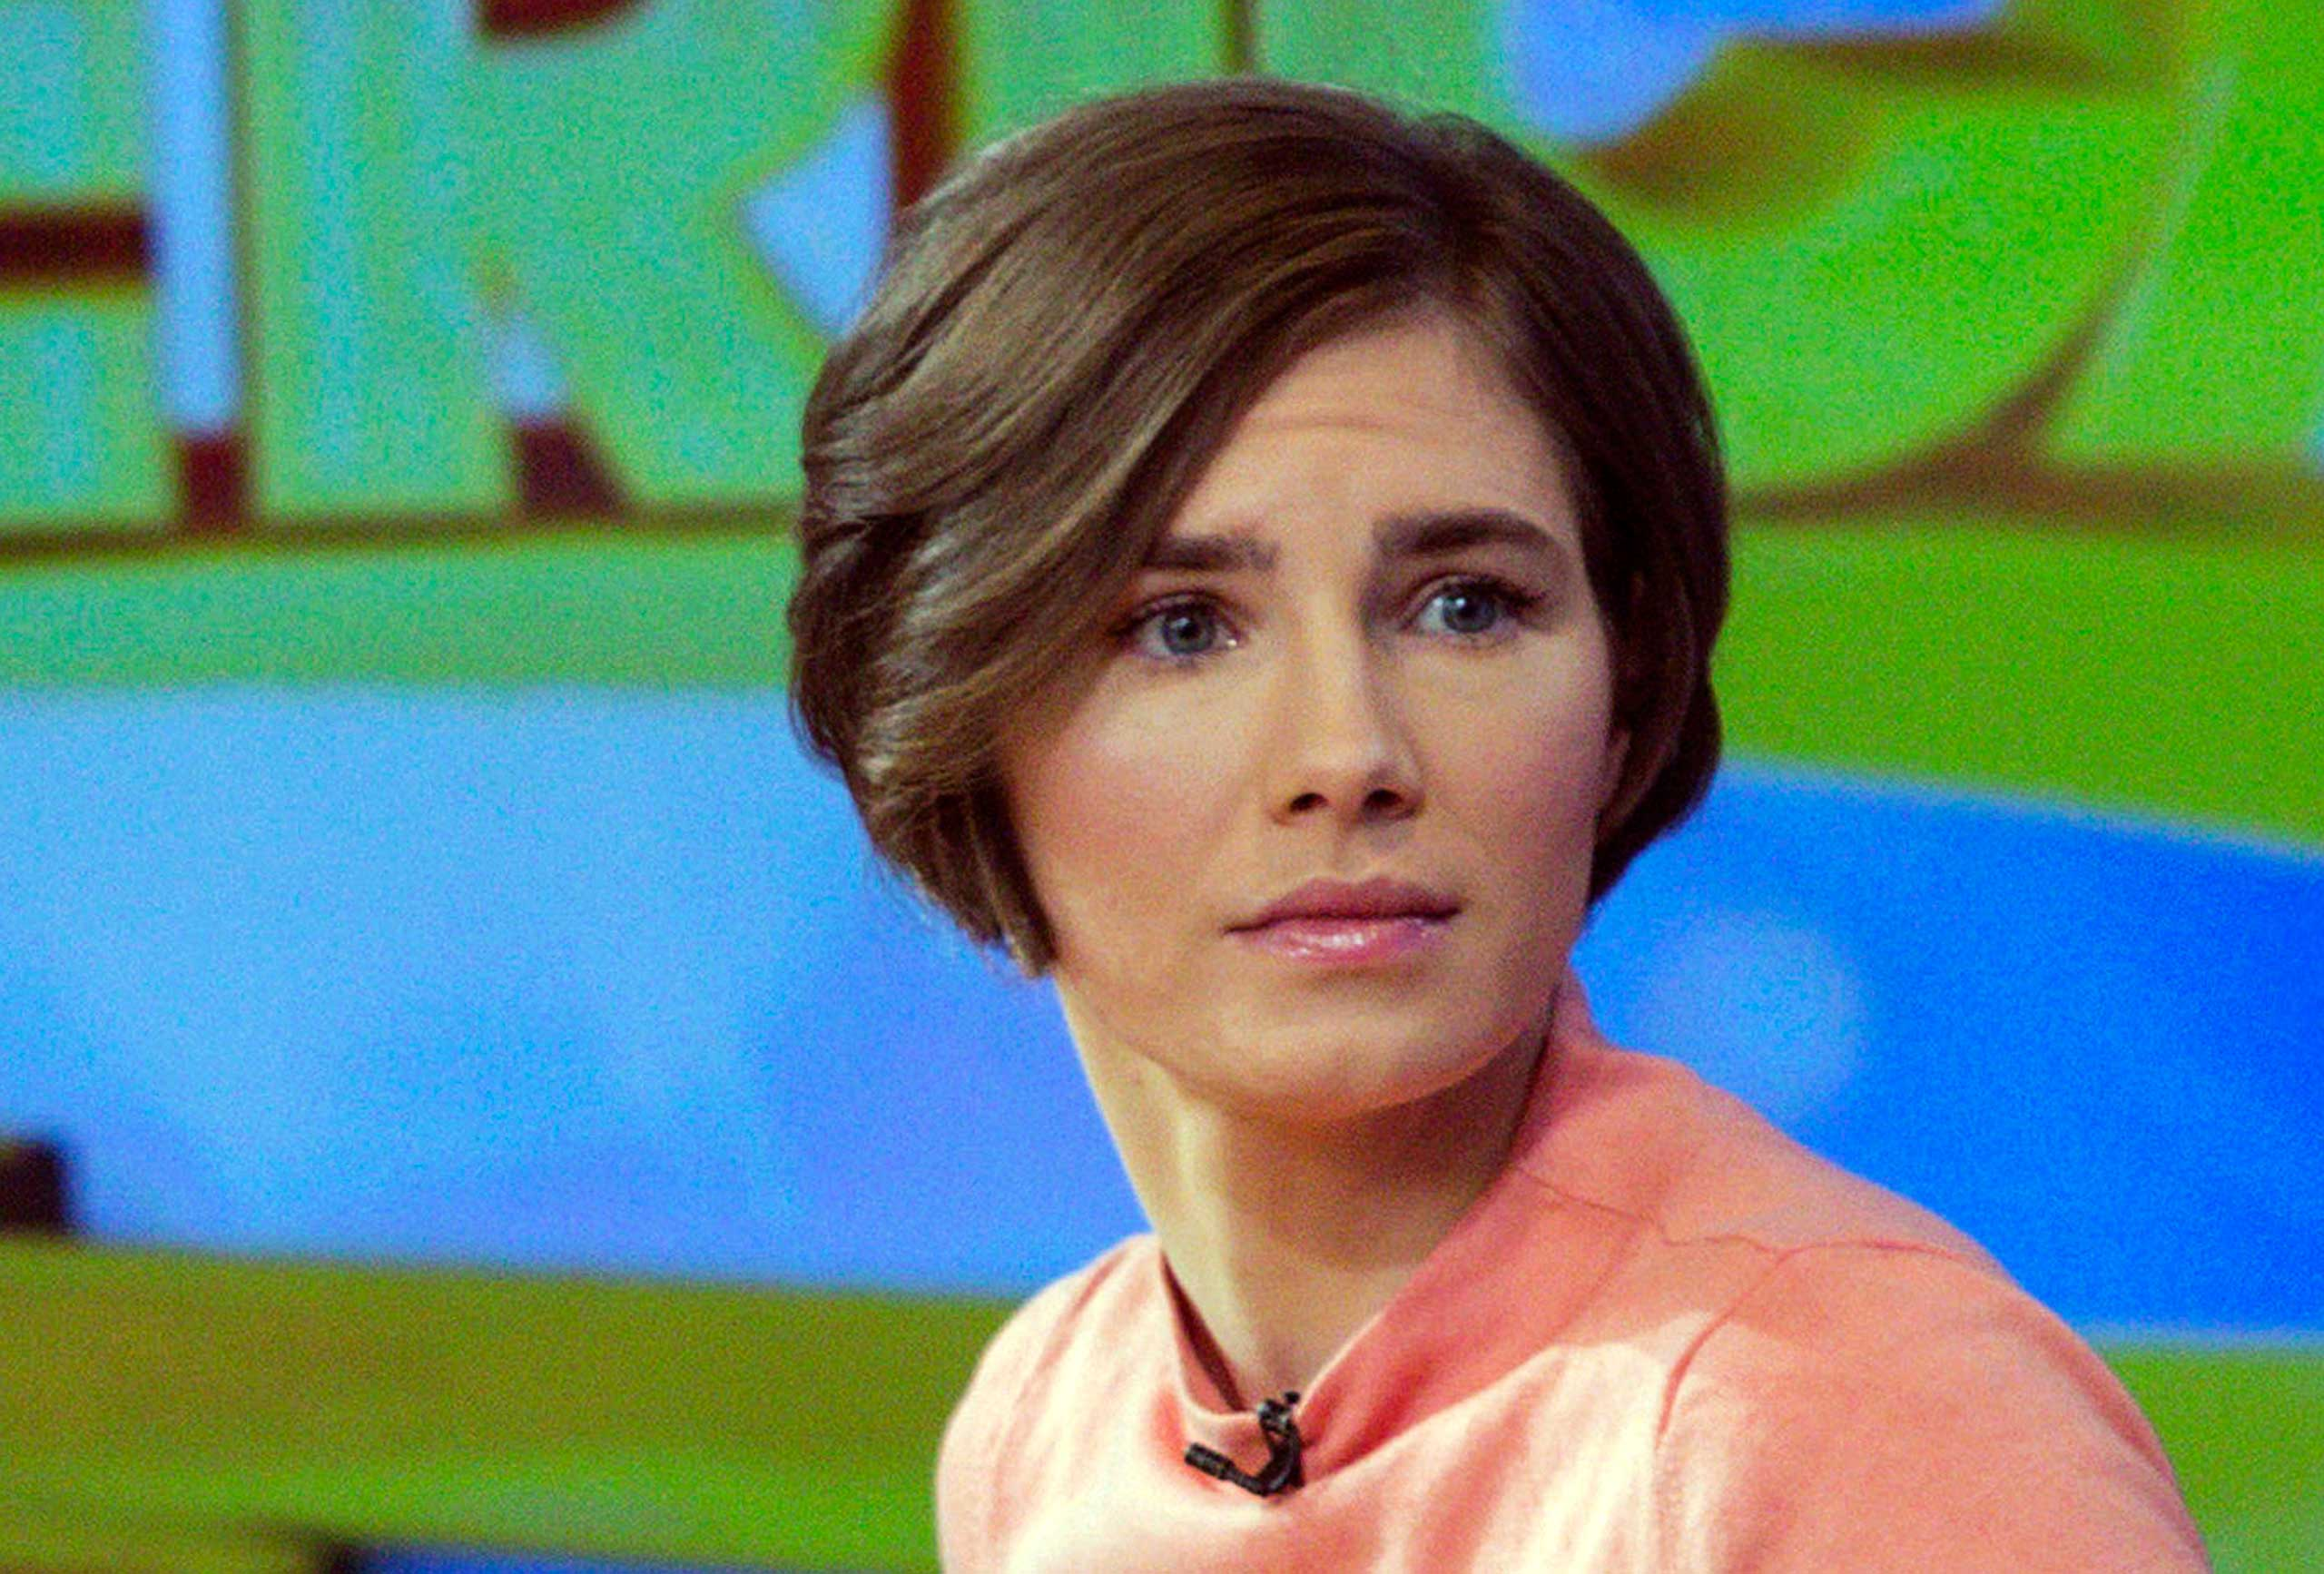 Amanda Knox reacts while being interviewed on the set of ABC's  Good Morning America  in New York in this January 31, 2014 file photo.